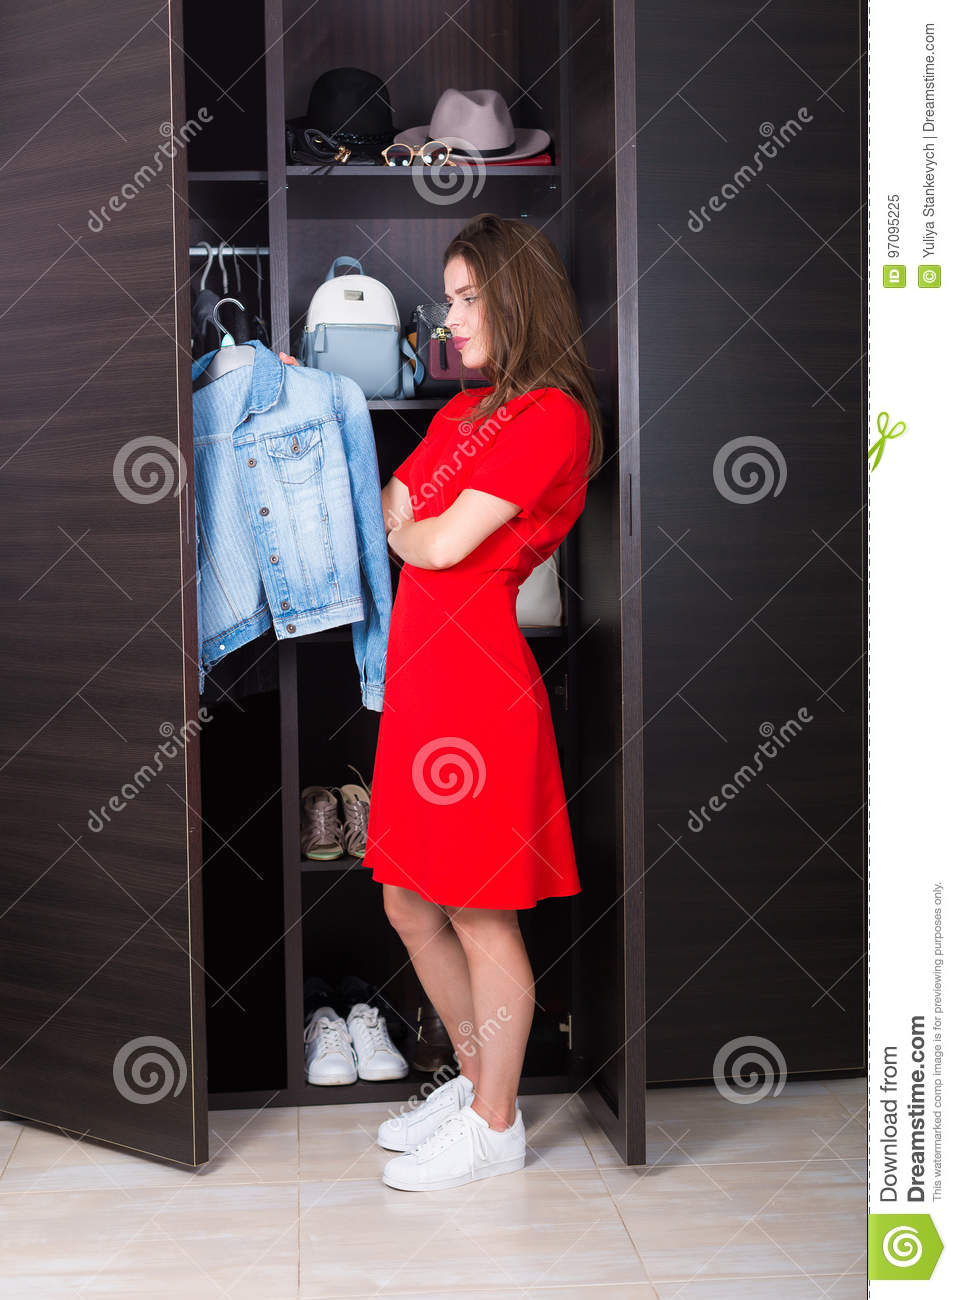 Woman and her wardrobe